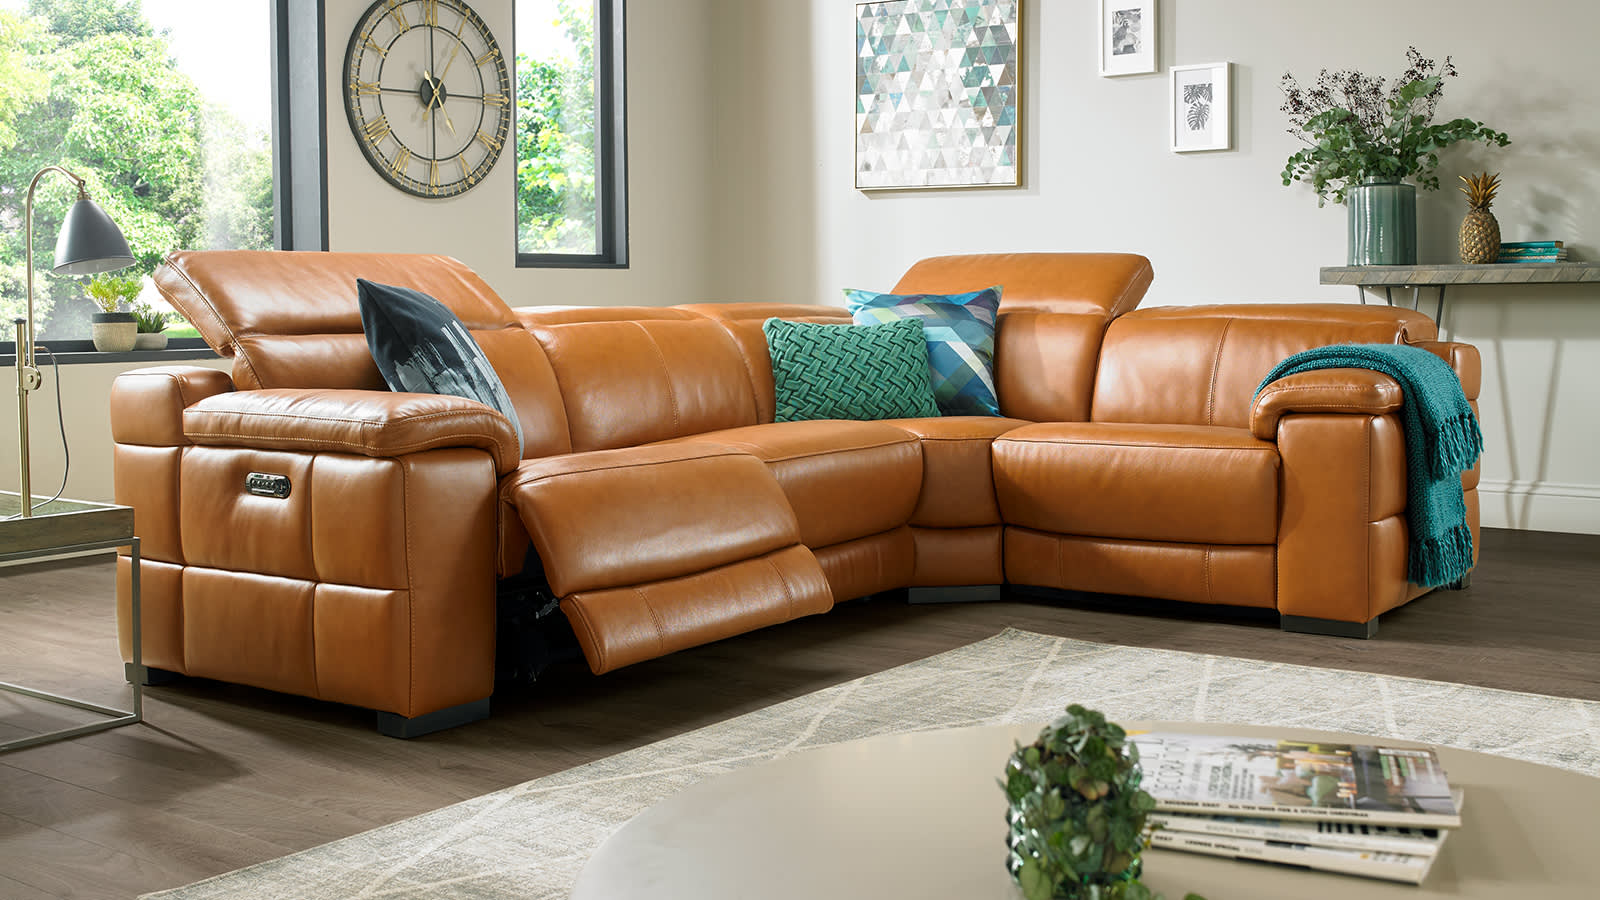 Sofology Laurence brown leather recliner sofa